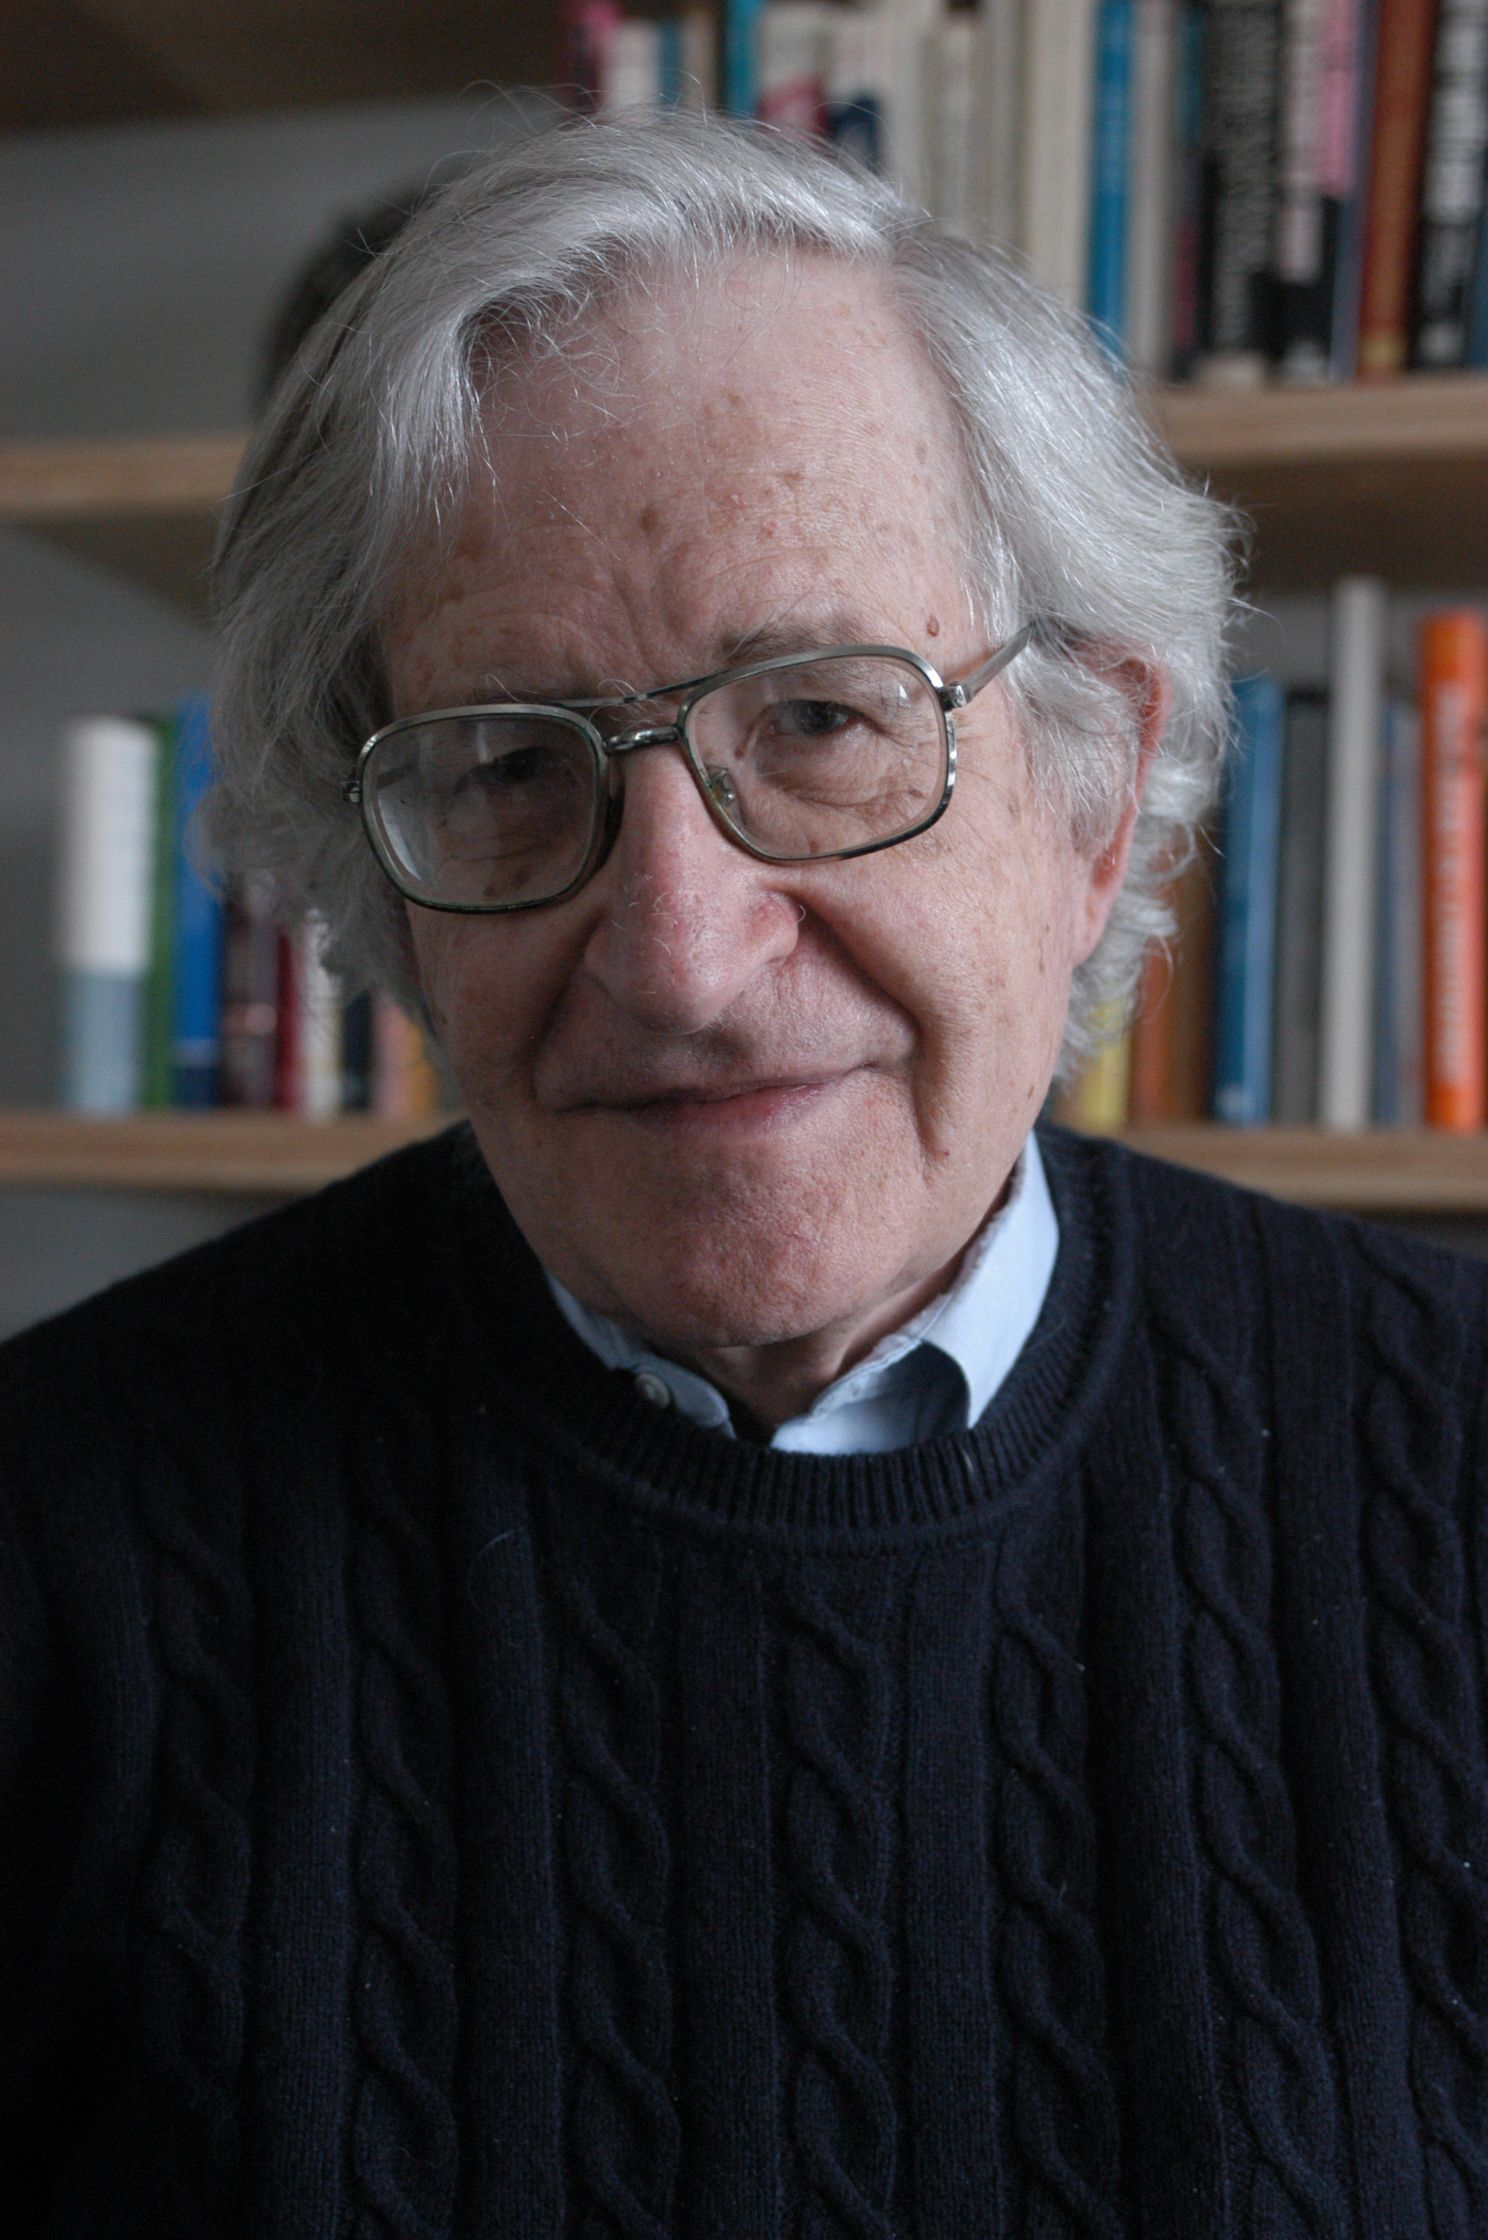 best images about philosophy mathematicians 17 best images about philosophy mathematicians noam chomsky and philosophy of mathematics